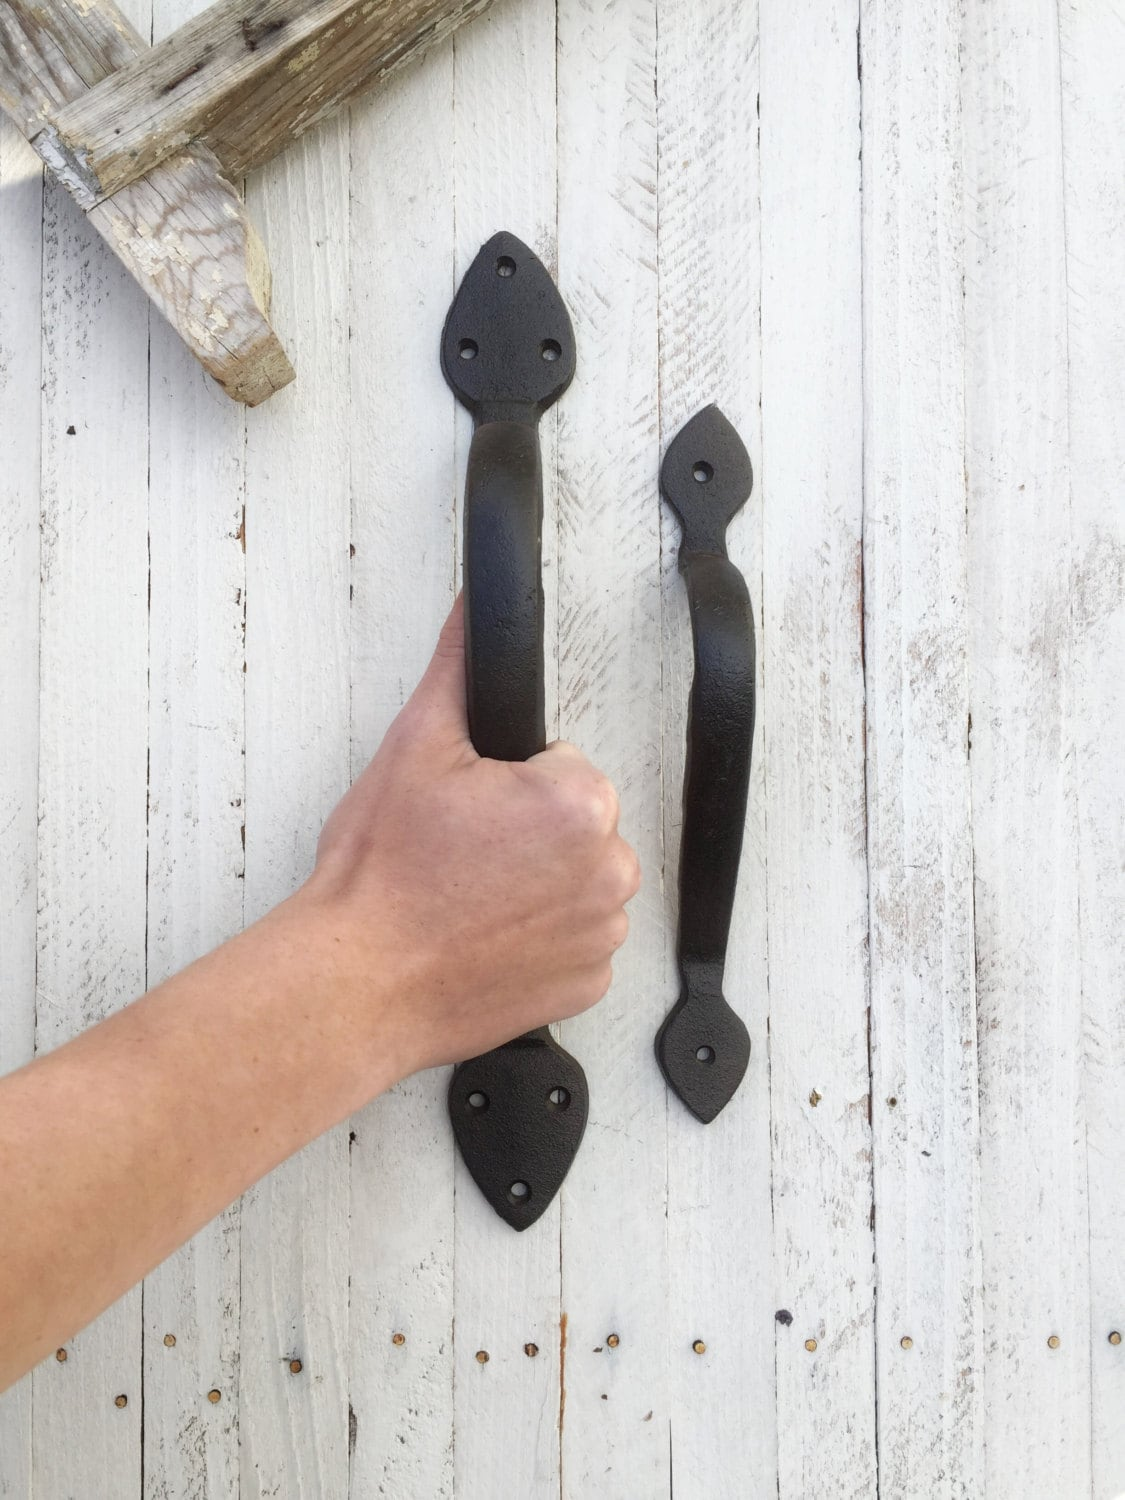 Large Iron Door Pull Barn Door Pull Home Fixtures Door. How Much Is A Spring For A Garage Door. Patio Sliding Door Hardware. Wayne Dalton Garage Doors Reviews. Modern Cabinet Door Pulls. Cabinet Door Catch. Pegboard For Garage. Prefab 3 Car Garage. Weather Stripping Garage Door